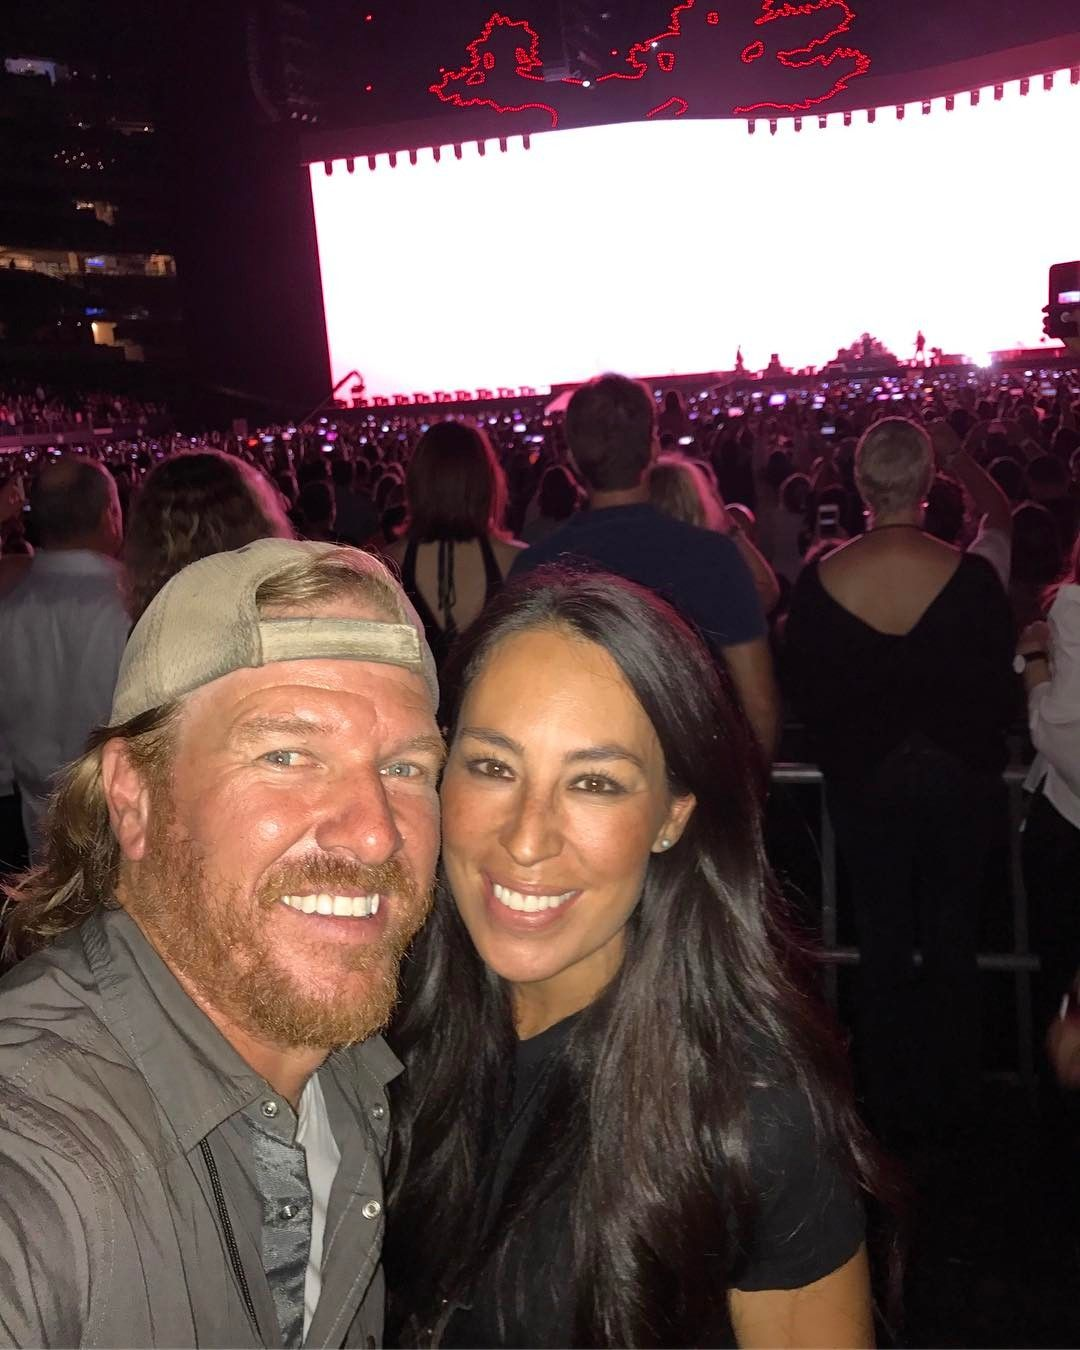 Chip Gaines Shuts Down Divorce Rumors With 3 Simple Words Chip